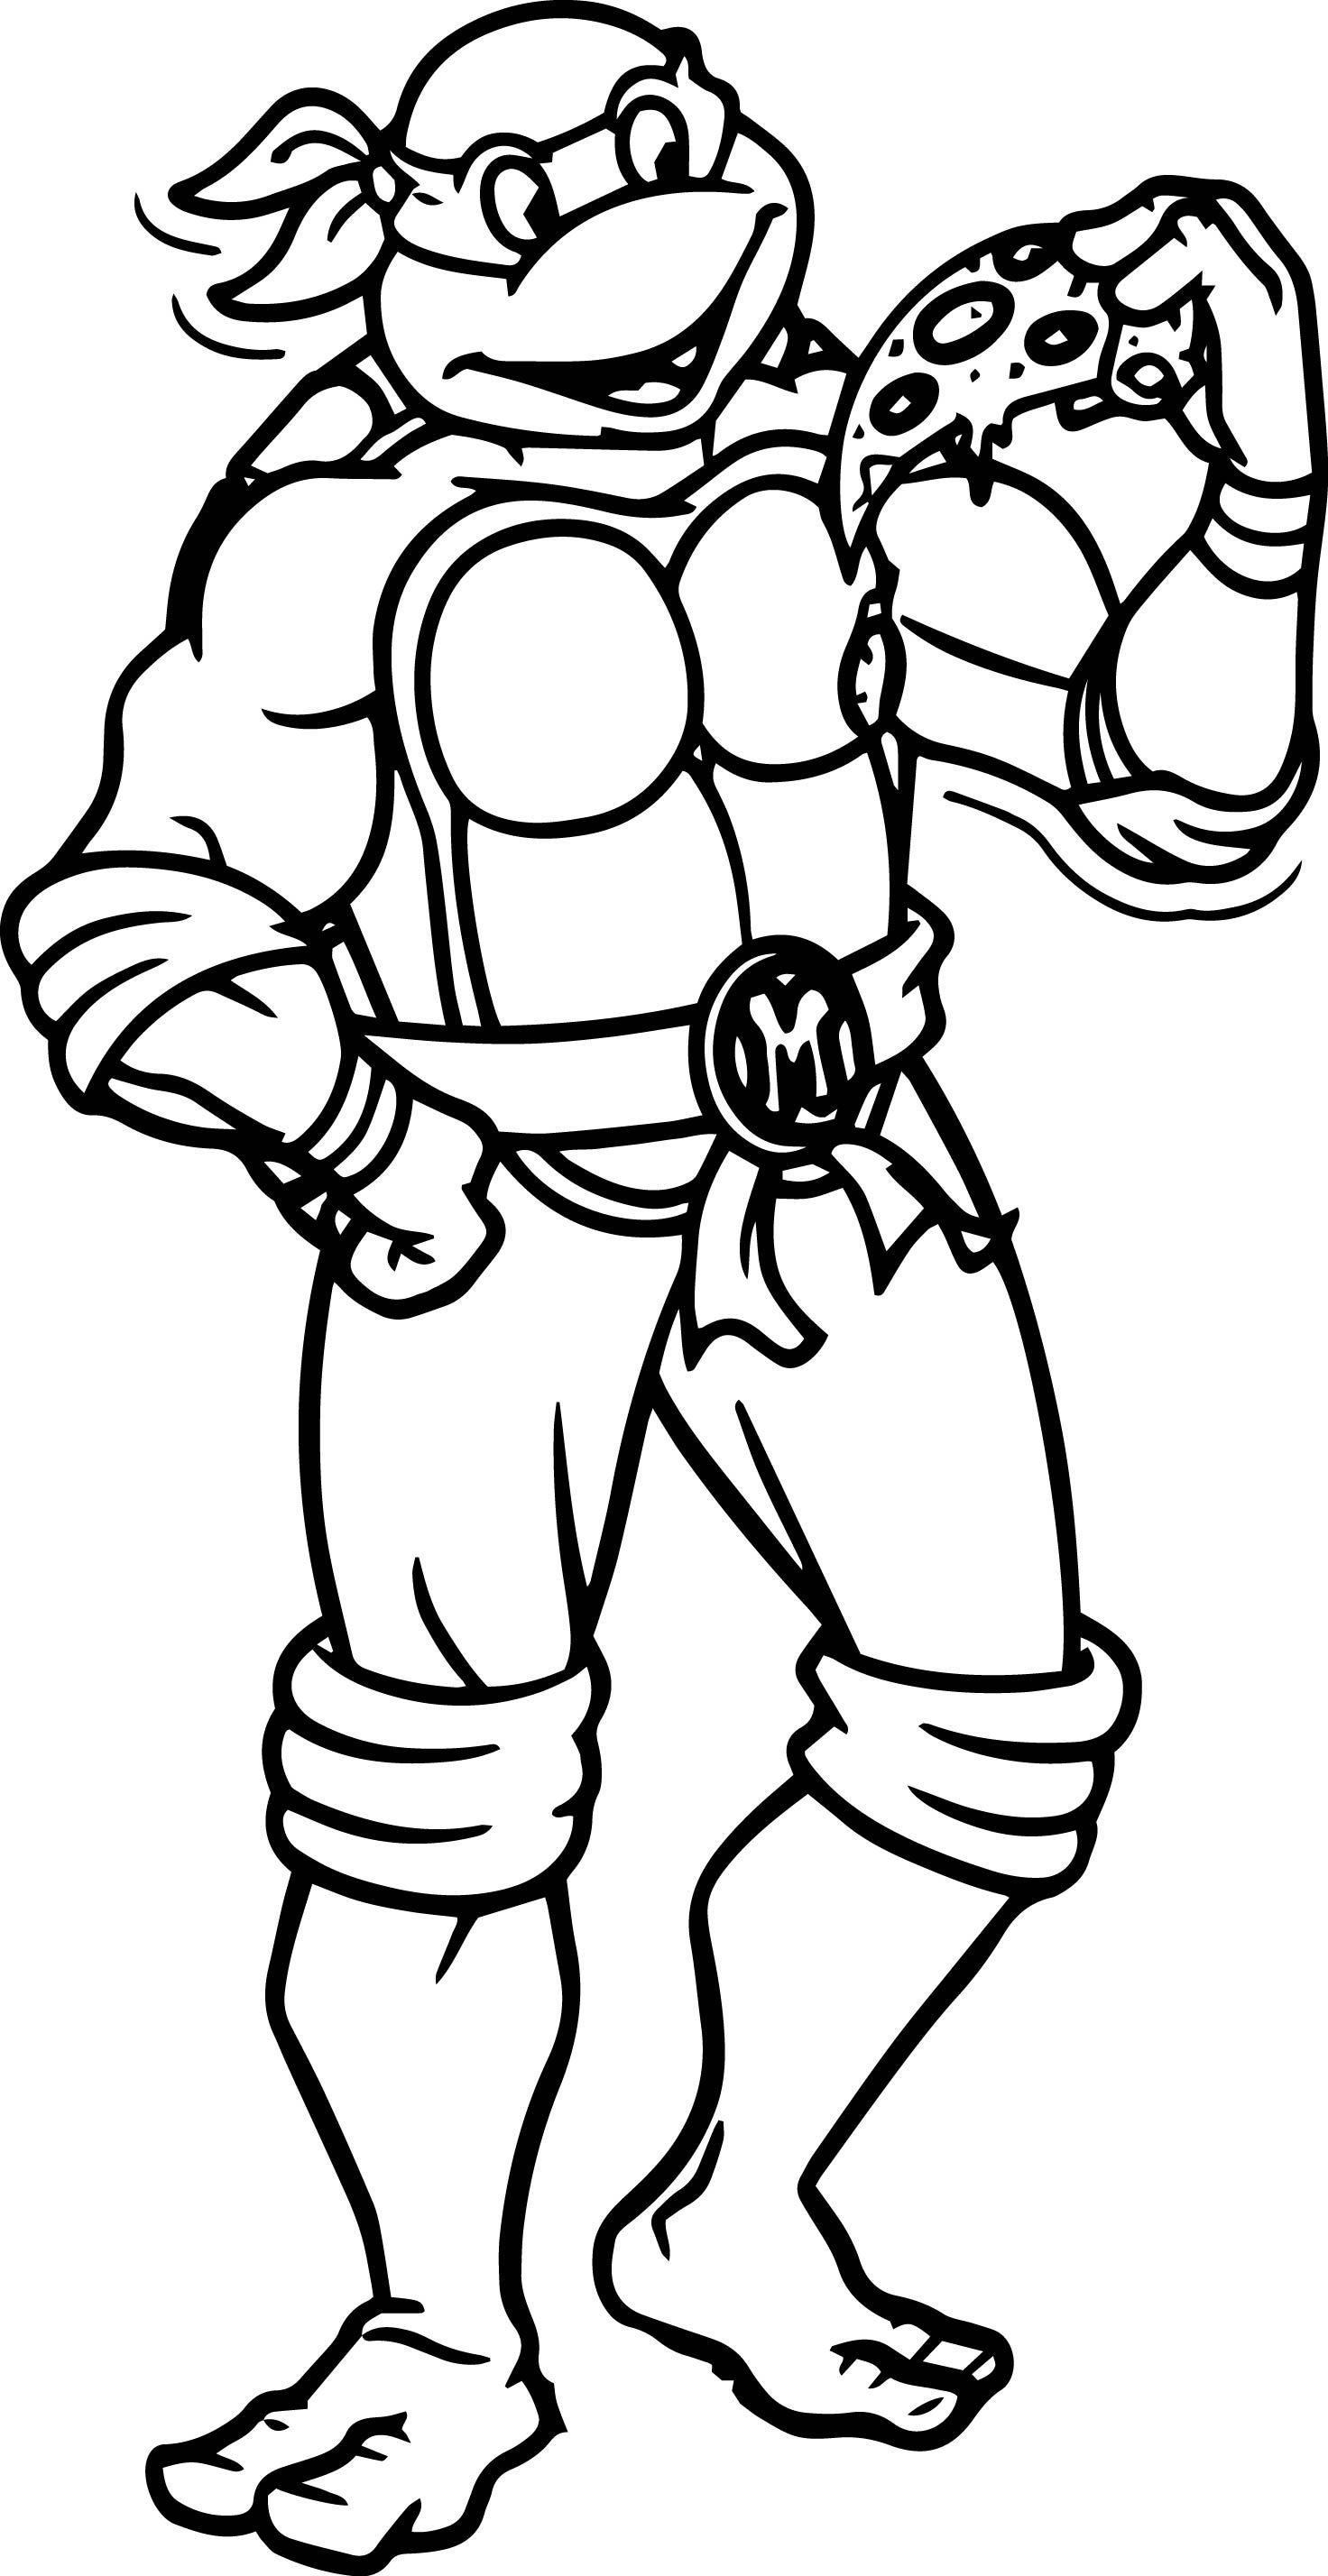 free ninja turtle coloring pages - photo#8